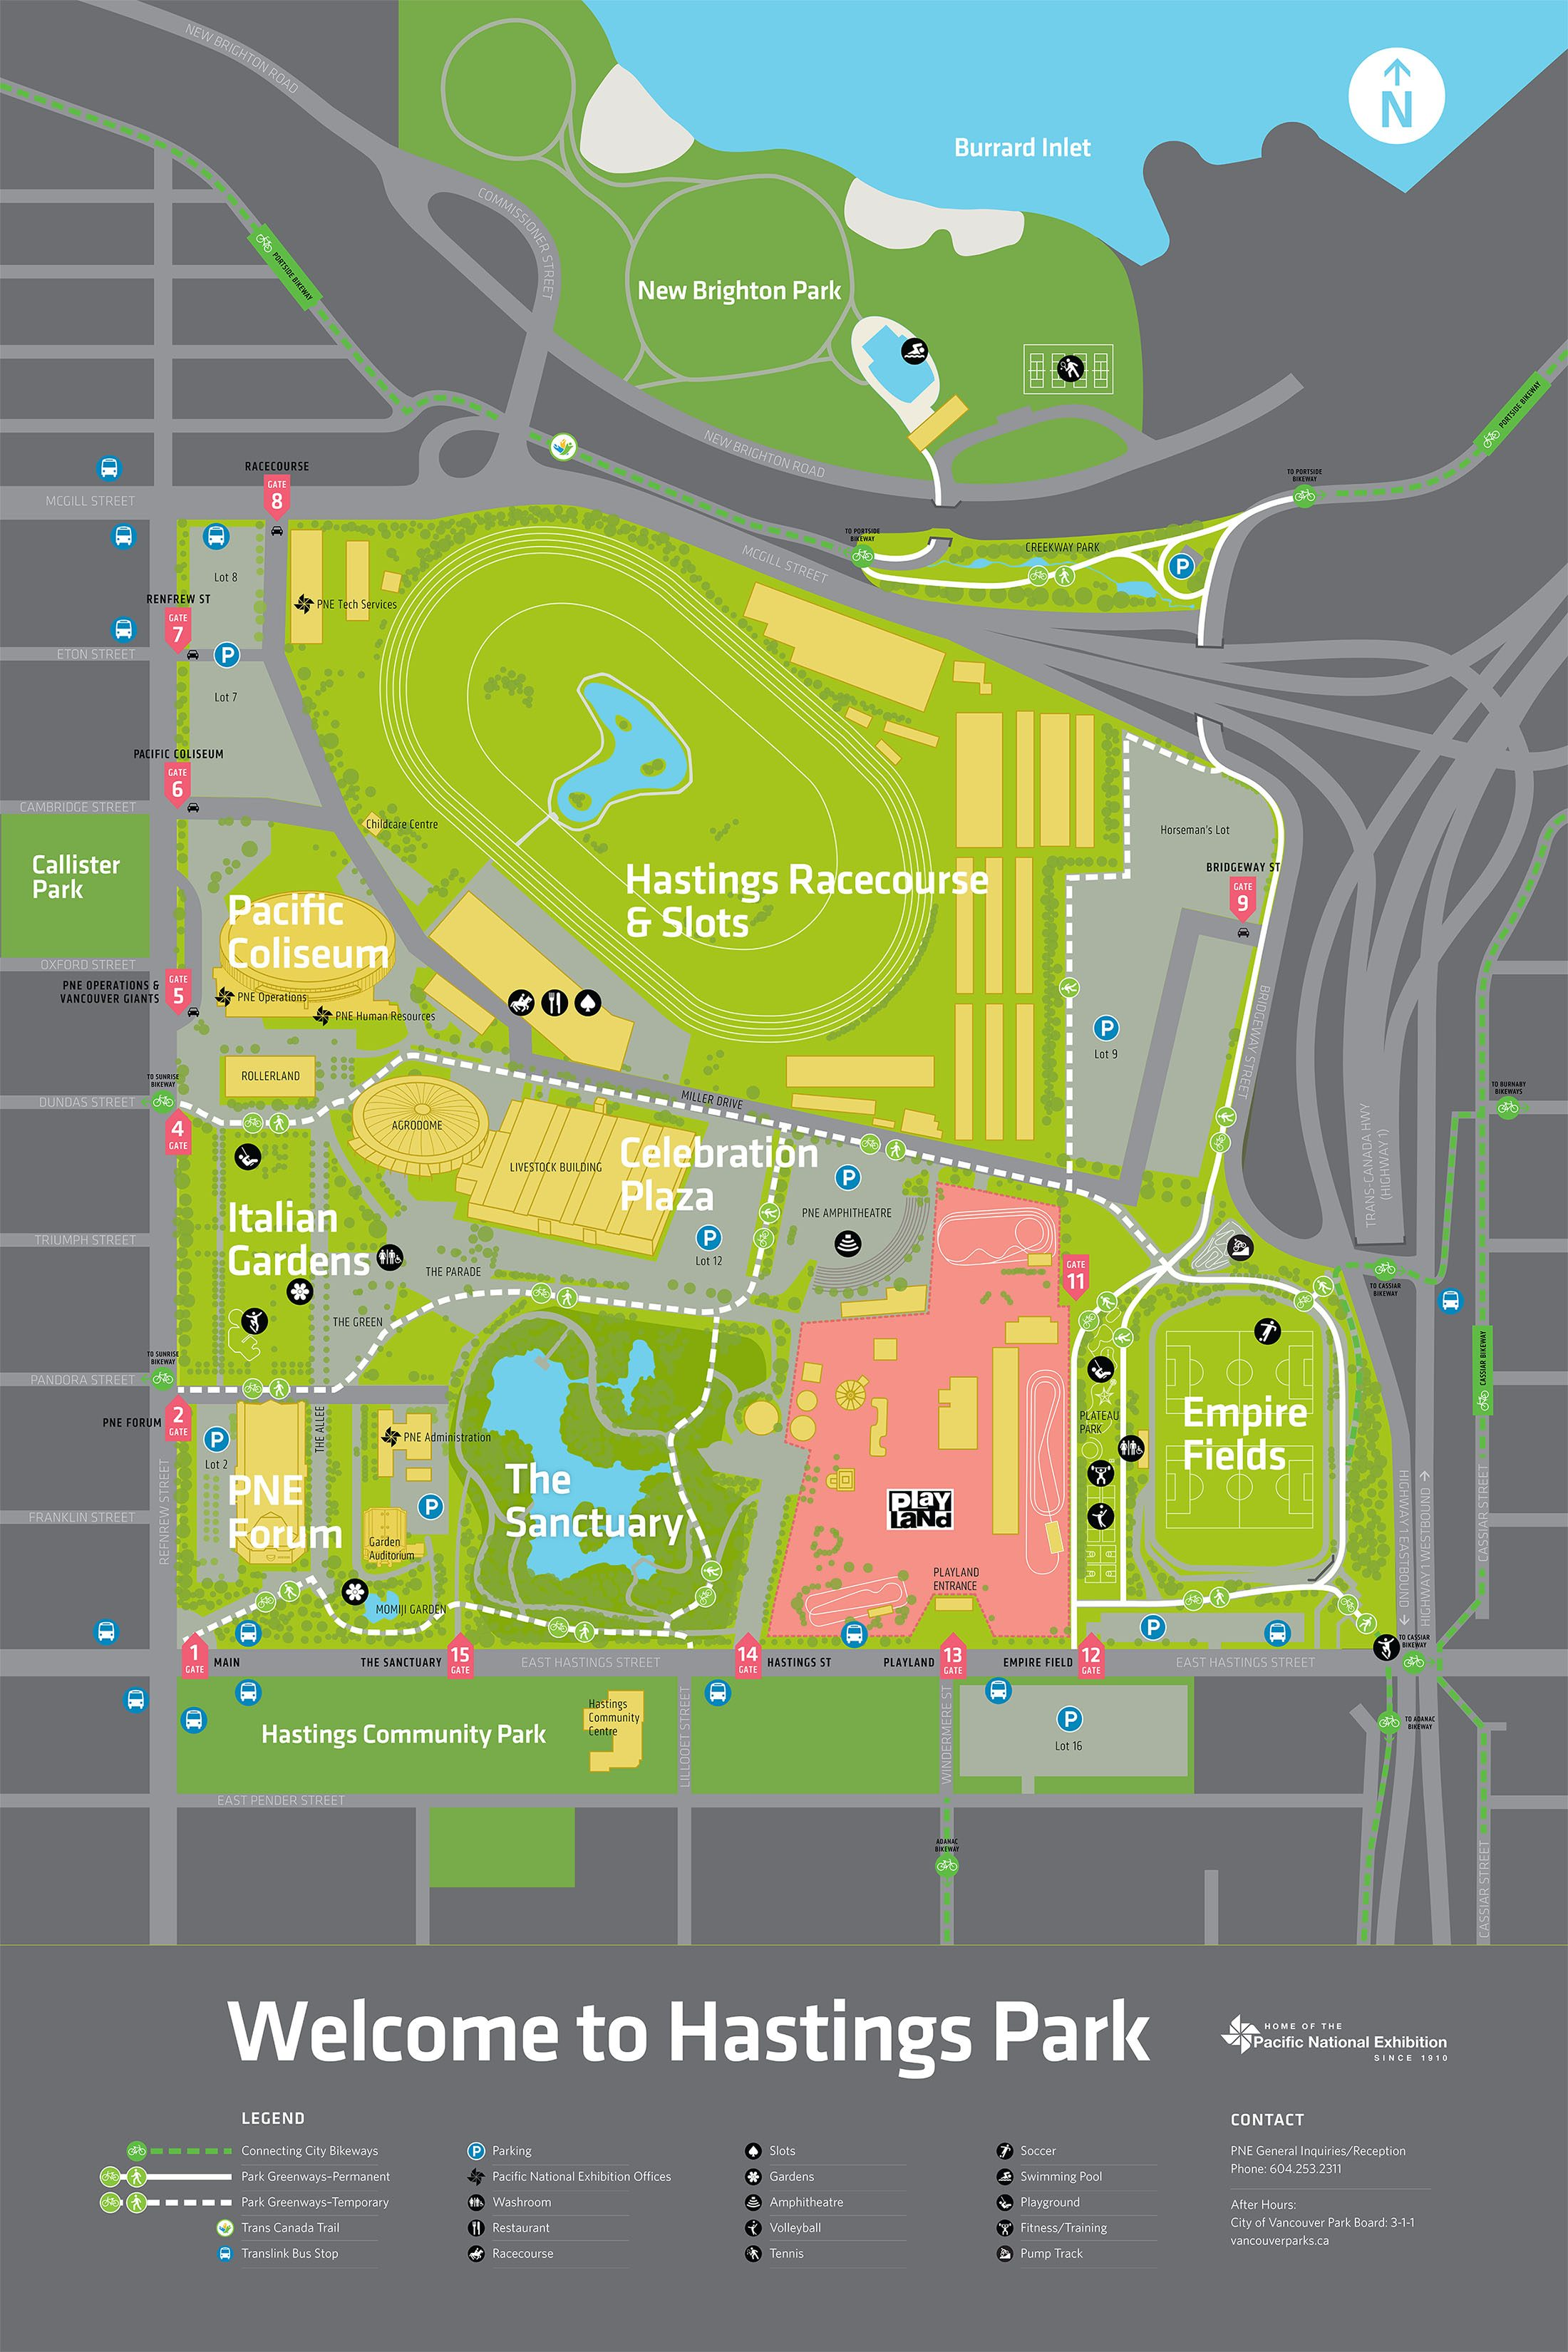 Hastings Park map in Vancouver (City of Vancouver)